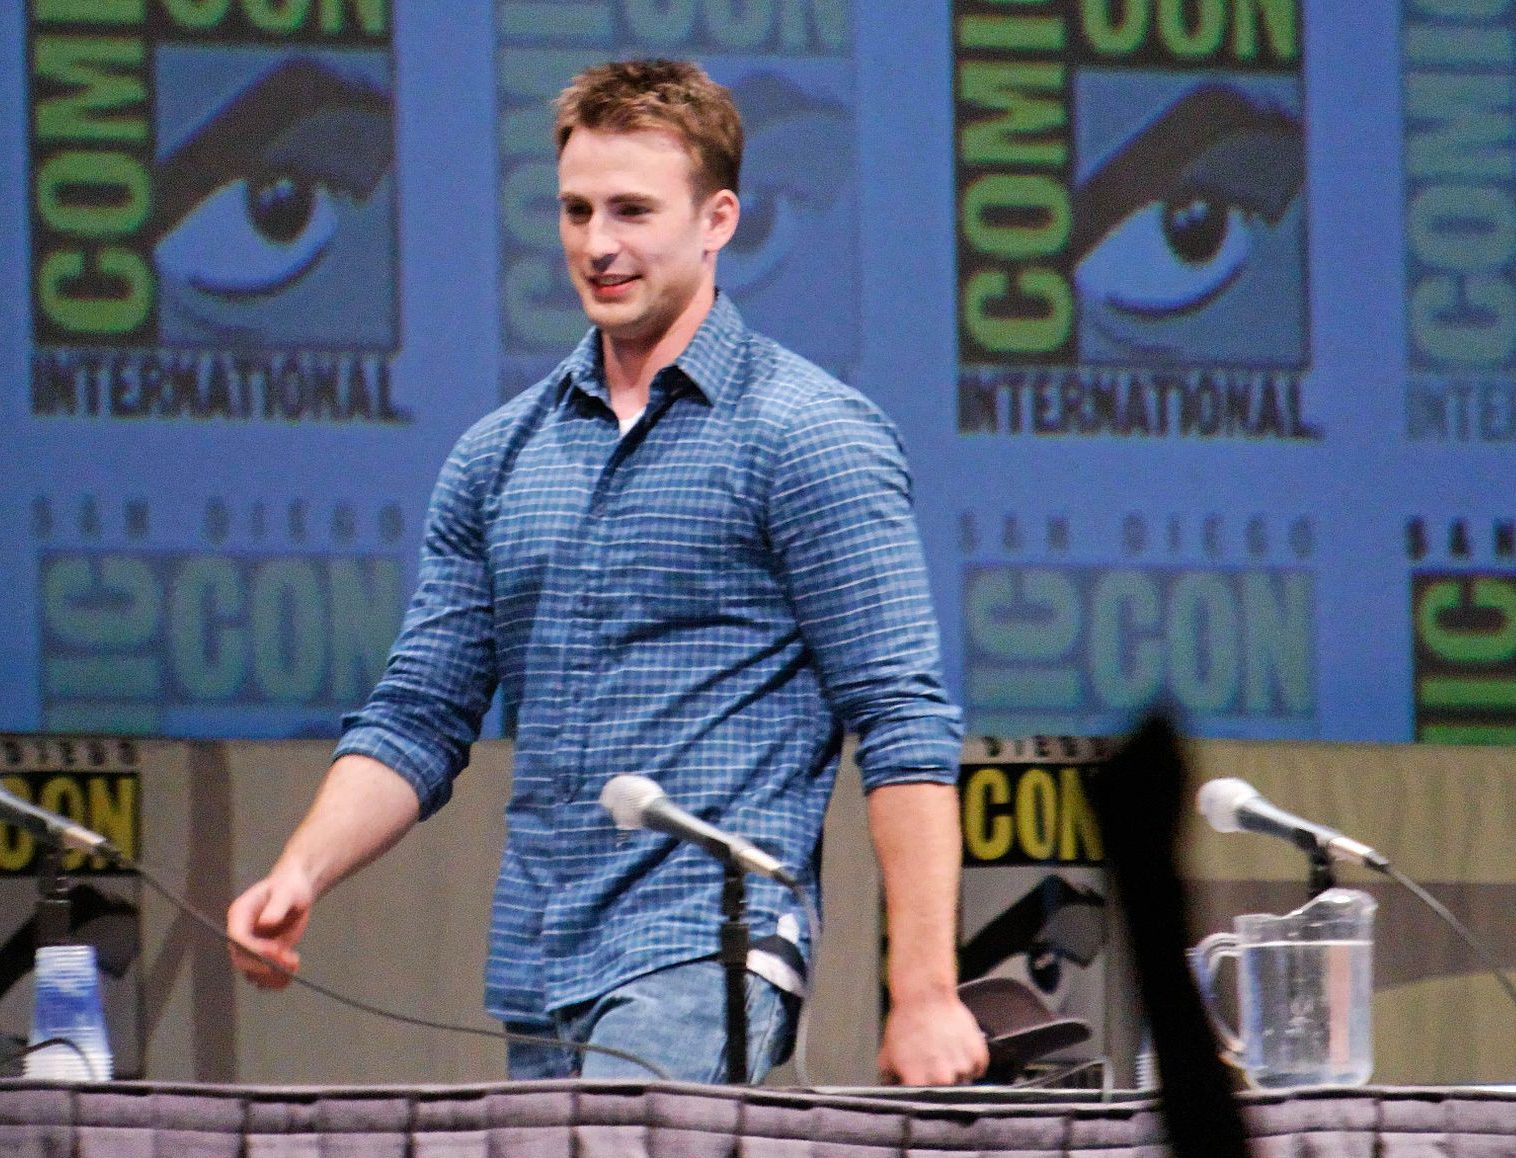 Chris Evans Comic Con 2010 e1625664421135 20 Things You Didn't Know About Chris Evans